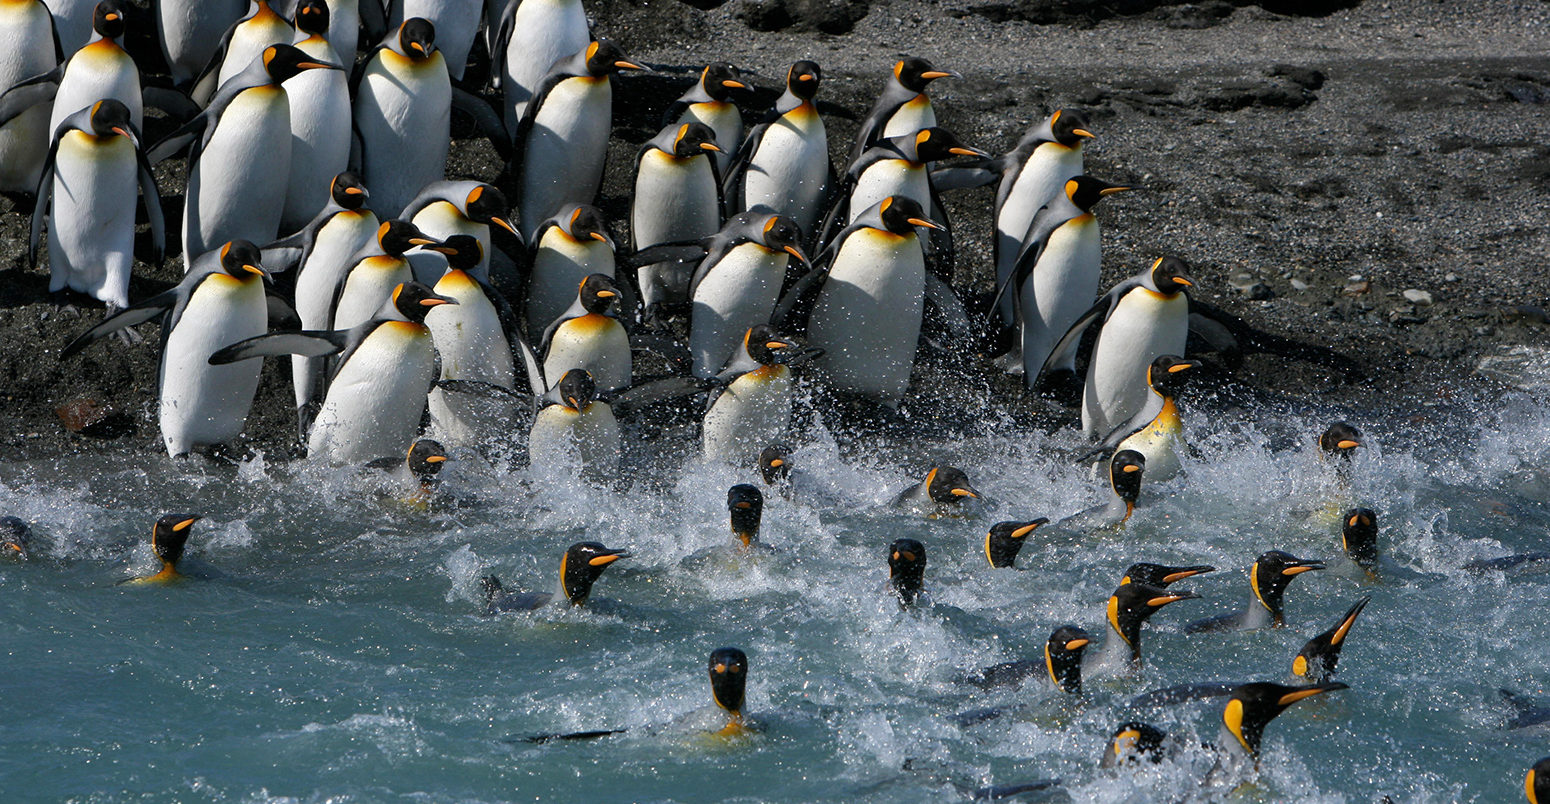 King penguins (Aptenodytes patagonicus) crossing water to reach breeding site, South Georgia. Taken on location for BBC Frozen Planet series, 2008